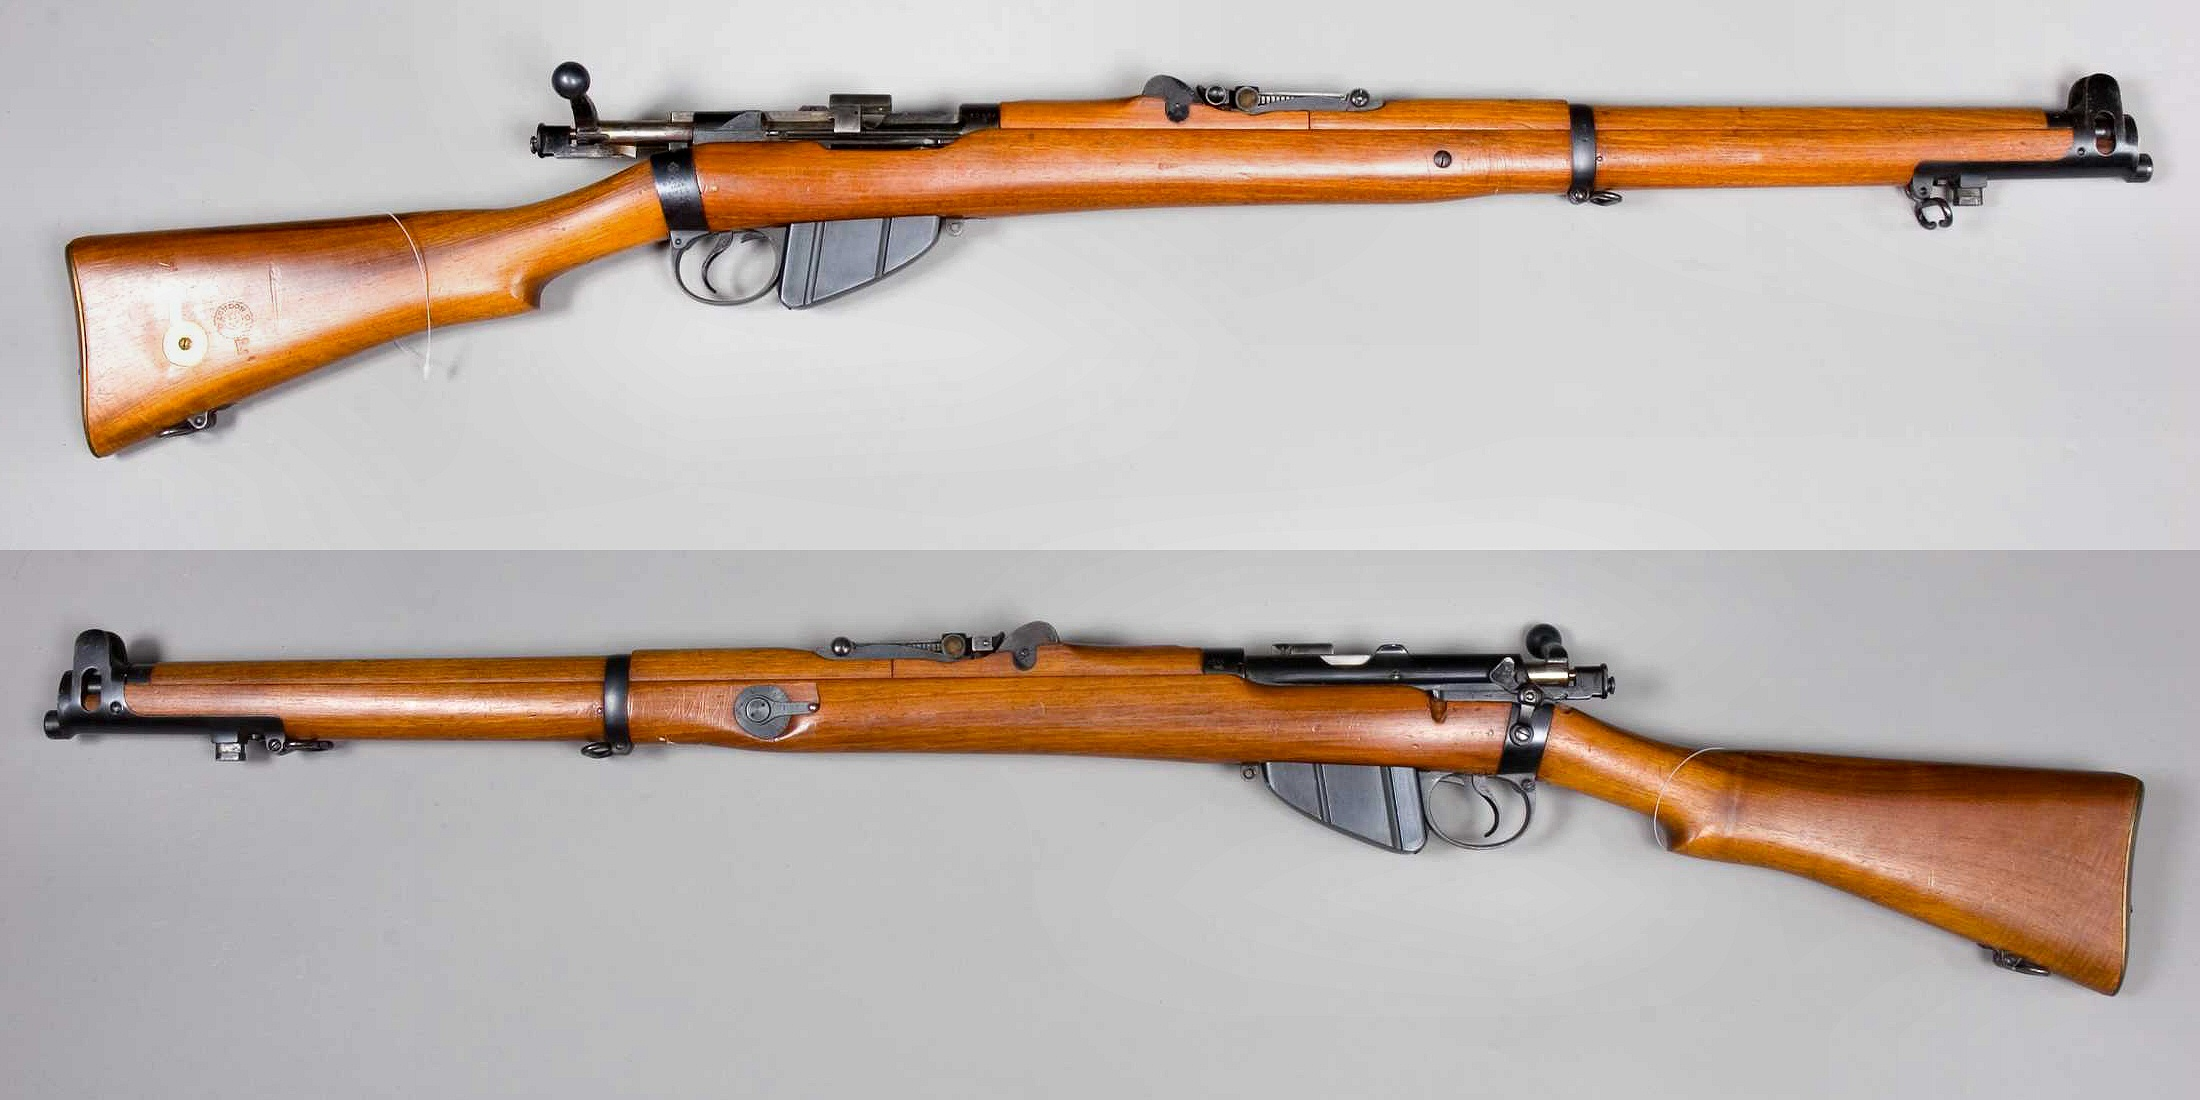 Lee–Enfield - Wikipedia